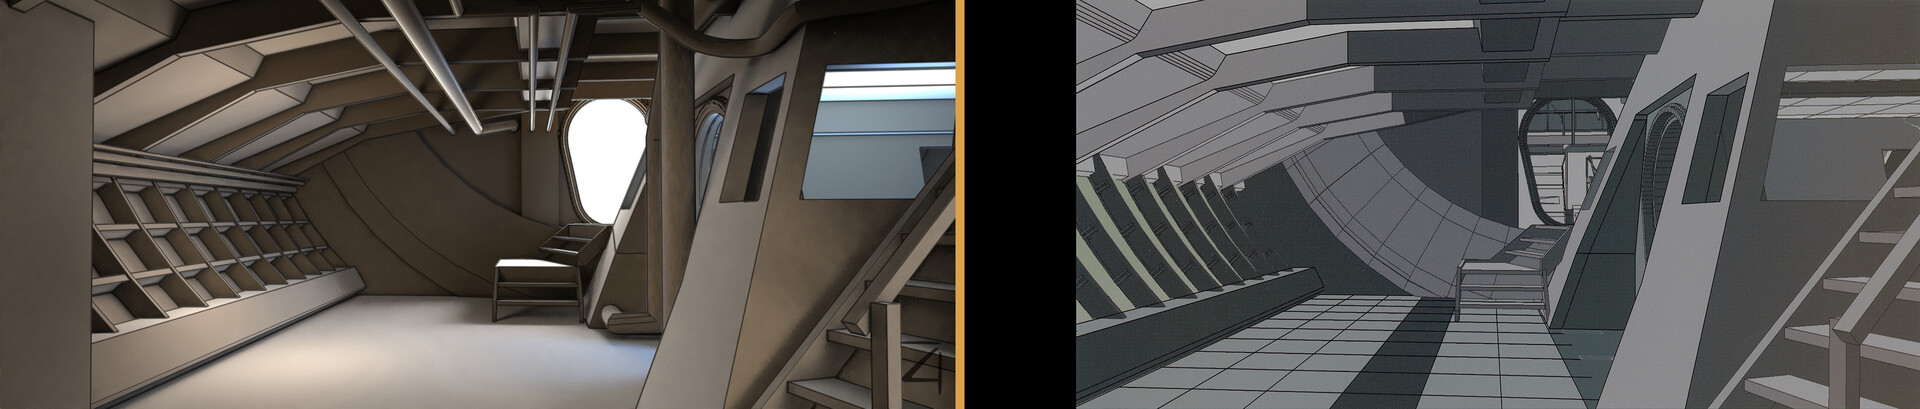 For the lounge, there were a couple of images in the Serenity Visual Companion of the 3D CAD files they had made to design the set, I was able to match the cameras from those images and model from them.